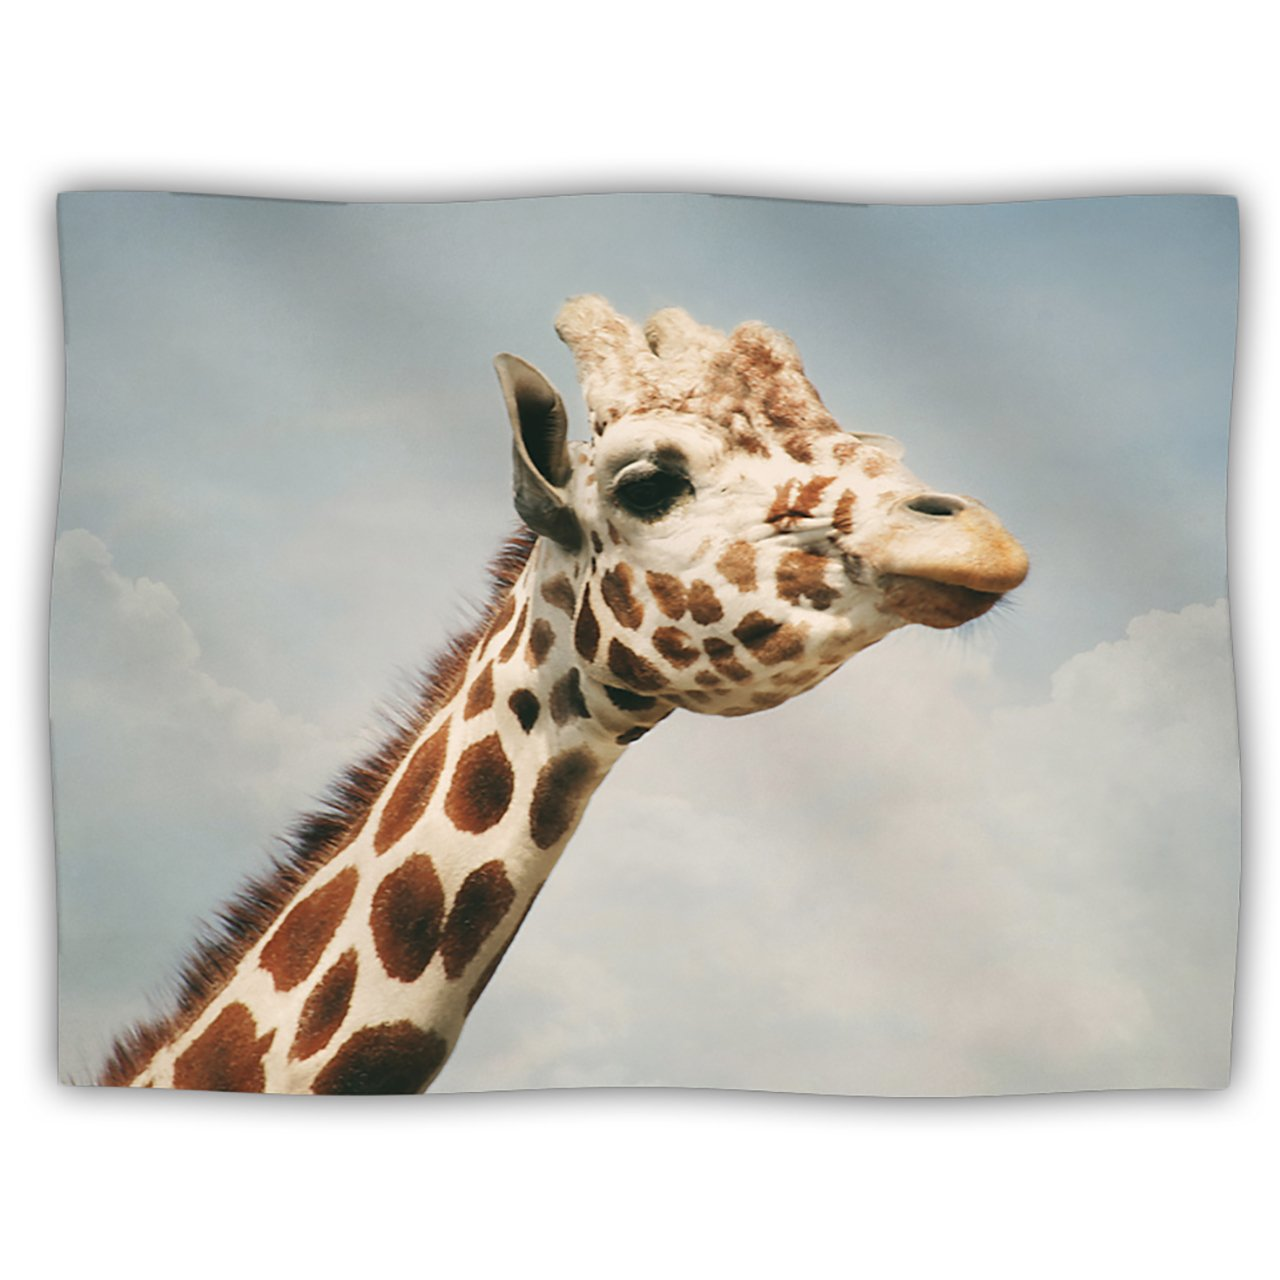 Kess InHouse Angie Turner Giraffe Animal Pet Blanket, 40 by 30-Inch